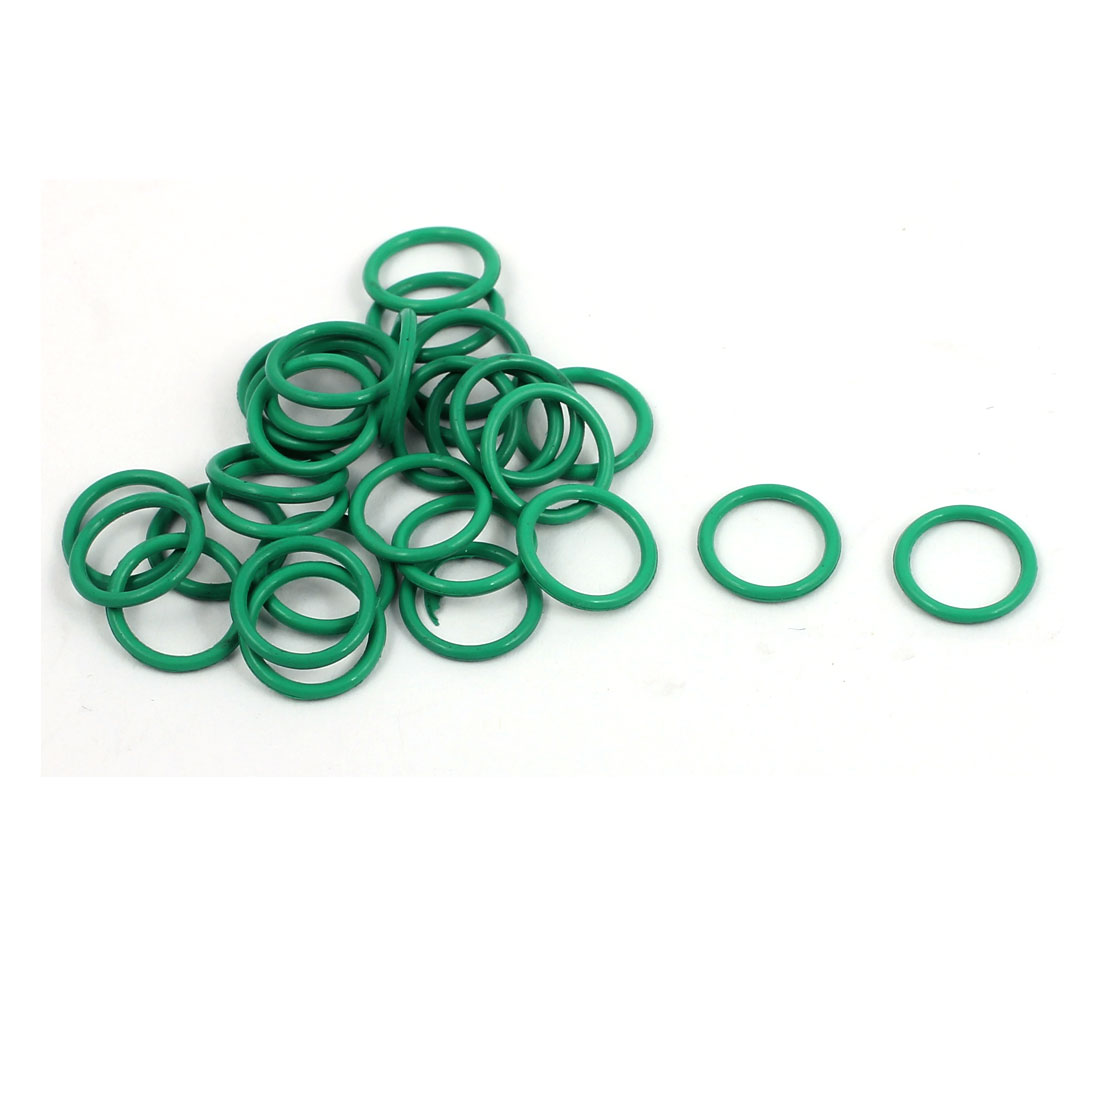 30Pcs 9mm x 1mm FKM O-rings Heat Resistant Sealing Ring Grommets Green